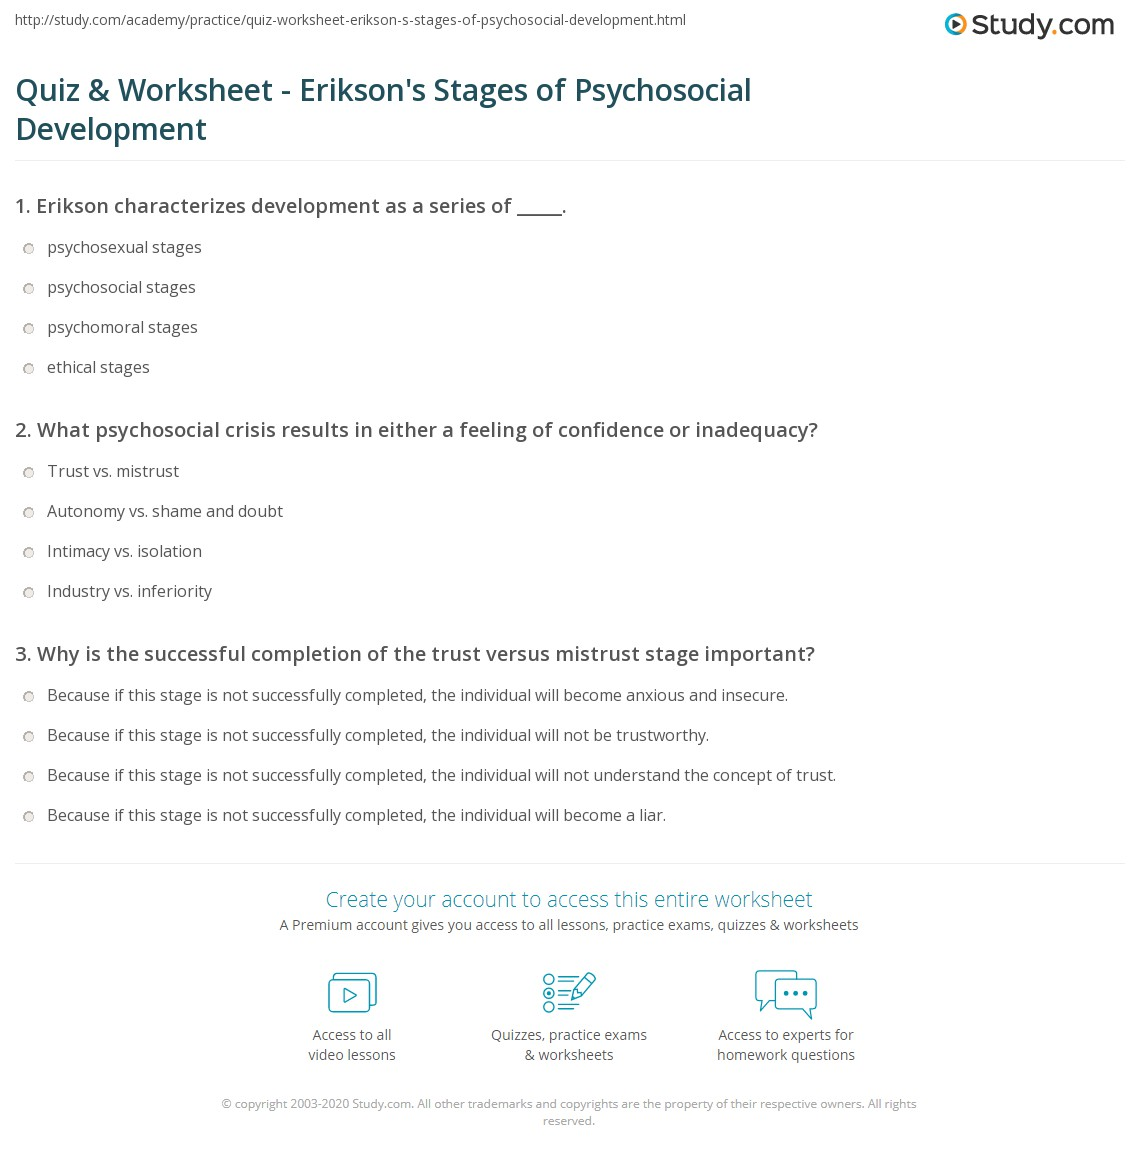 Quiz Worksheet Erikson S Stages Of Psychosocial Development